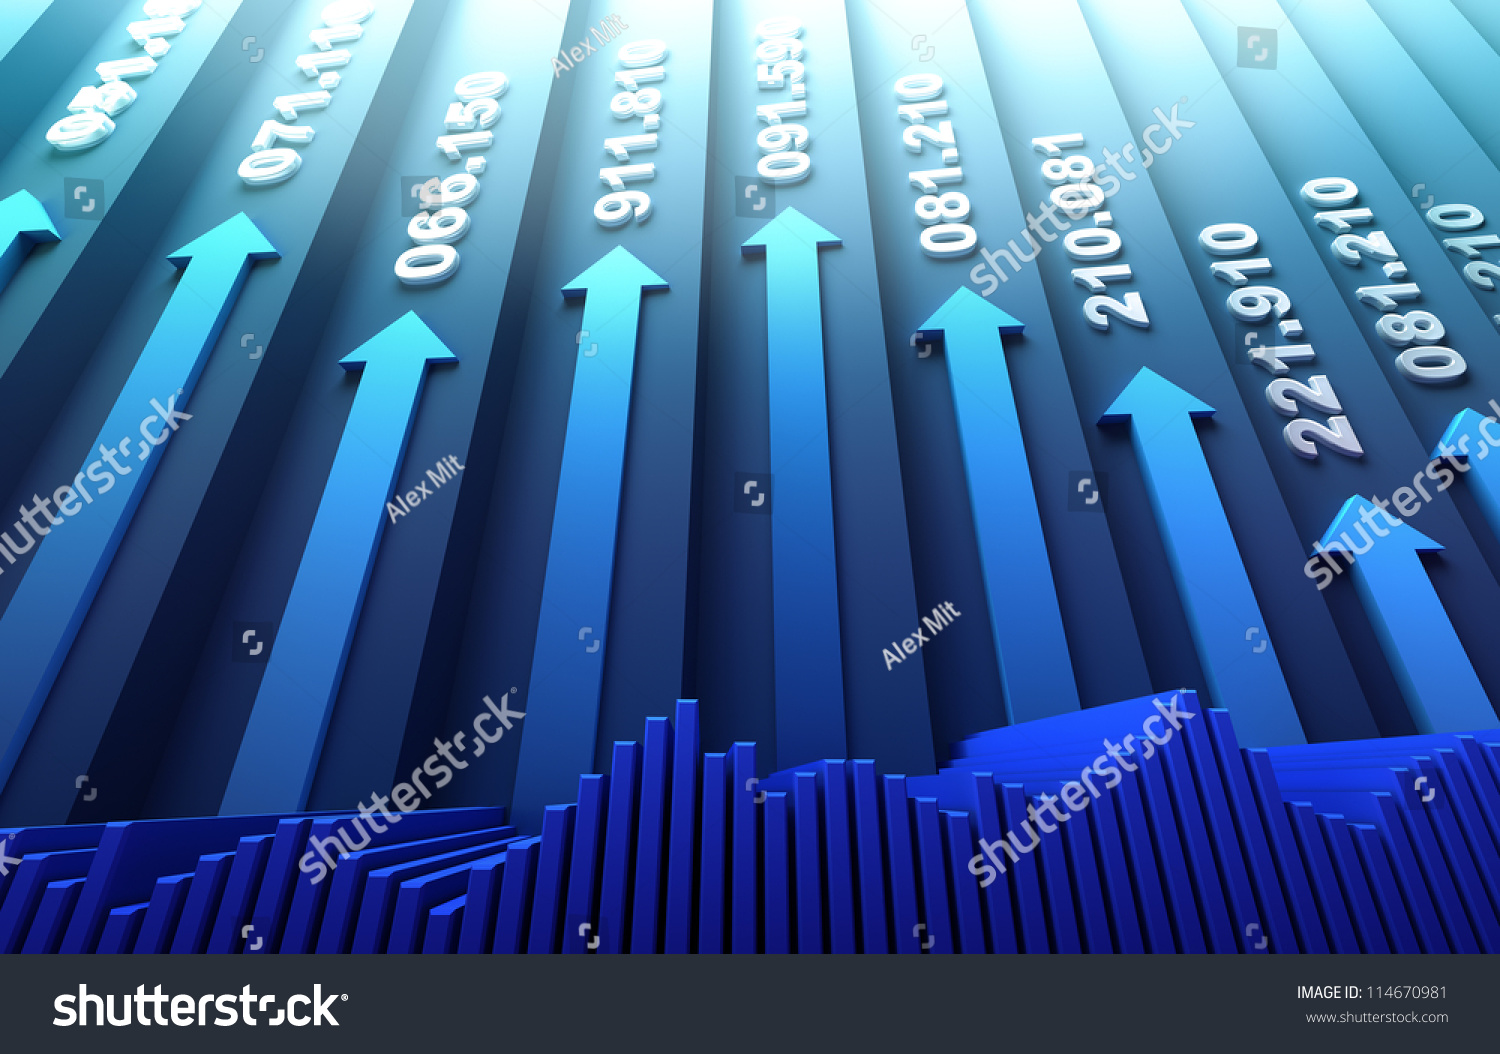 How To Monitor The Stock Market To Buy Stocks  Chron Download  14,931,999 Background Stock Photos For Free